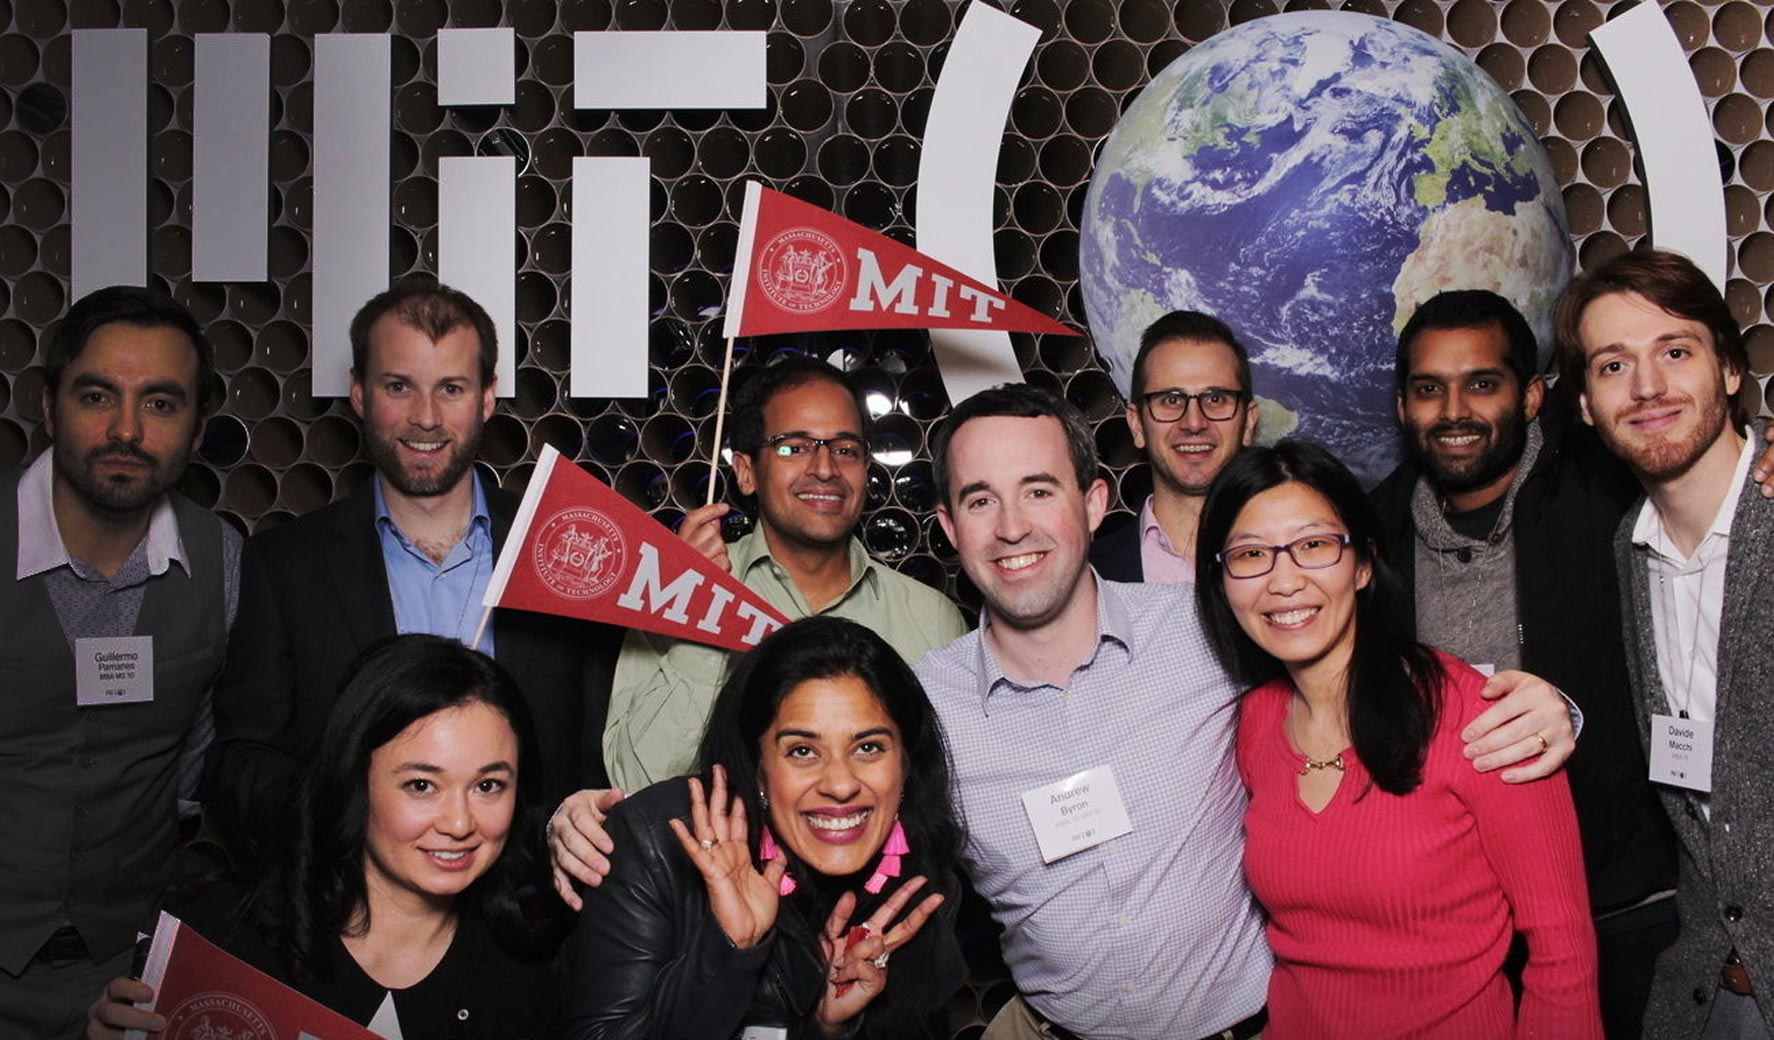 MIT alumni and friends celebrate the MIT Campaign at an event.